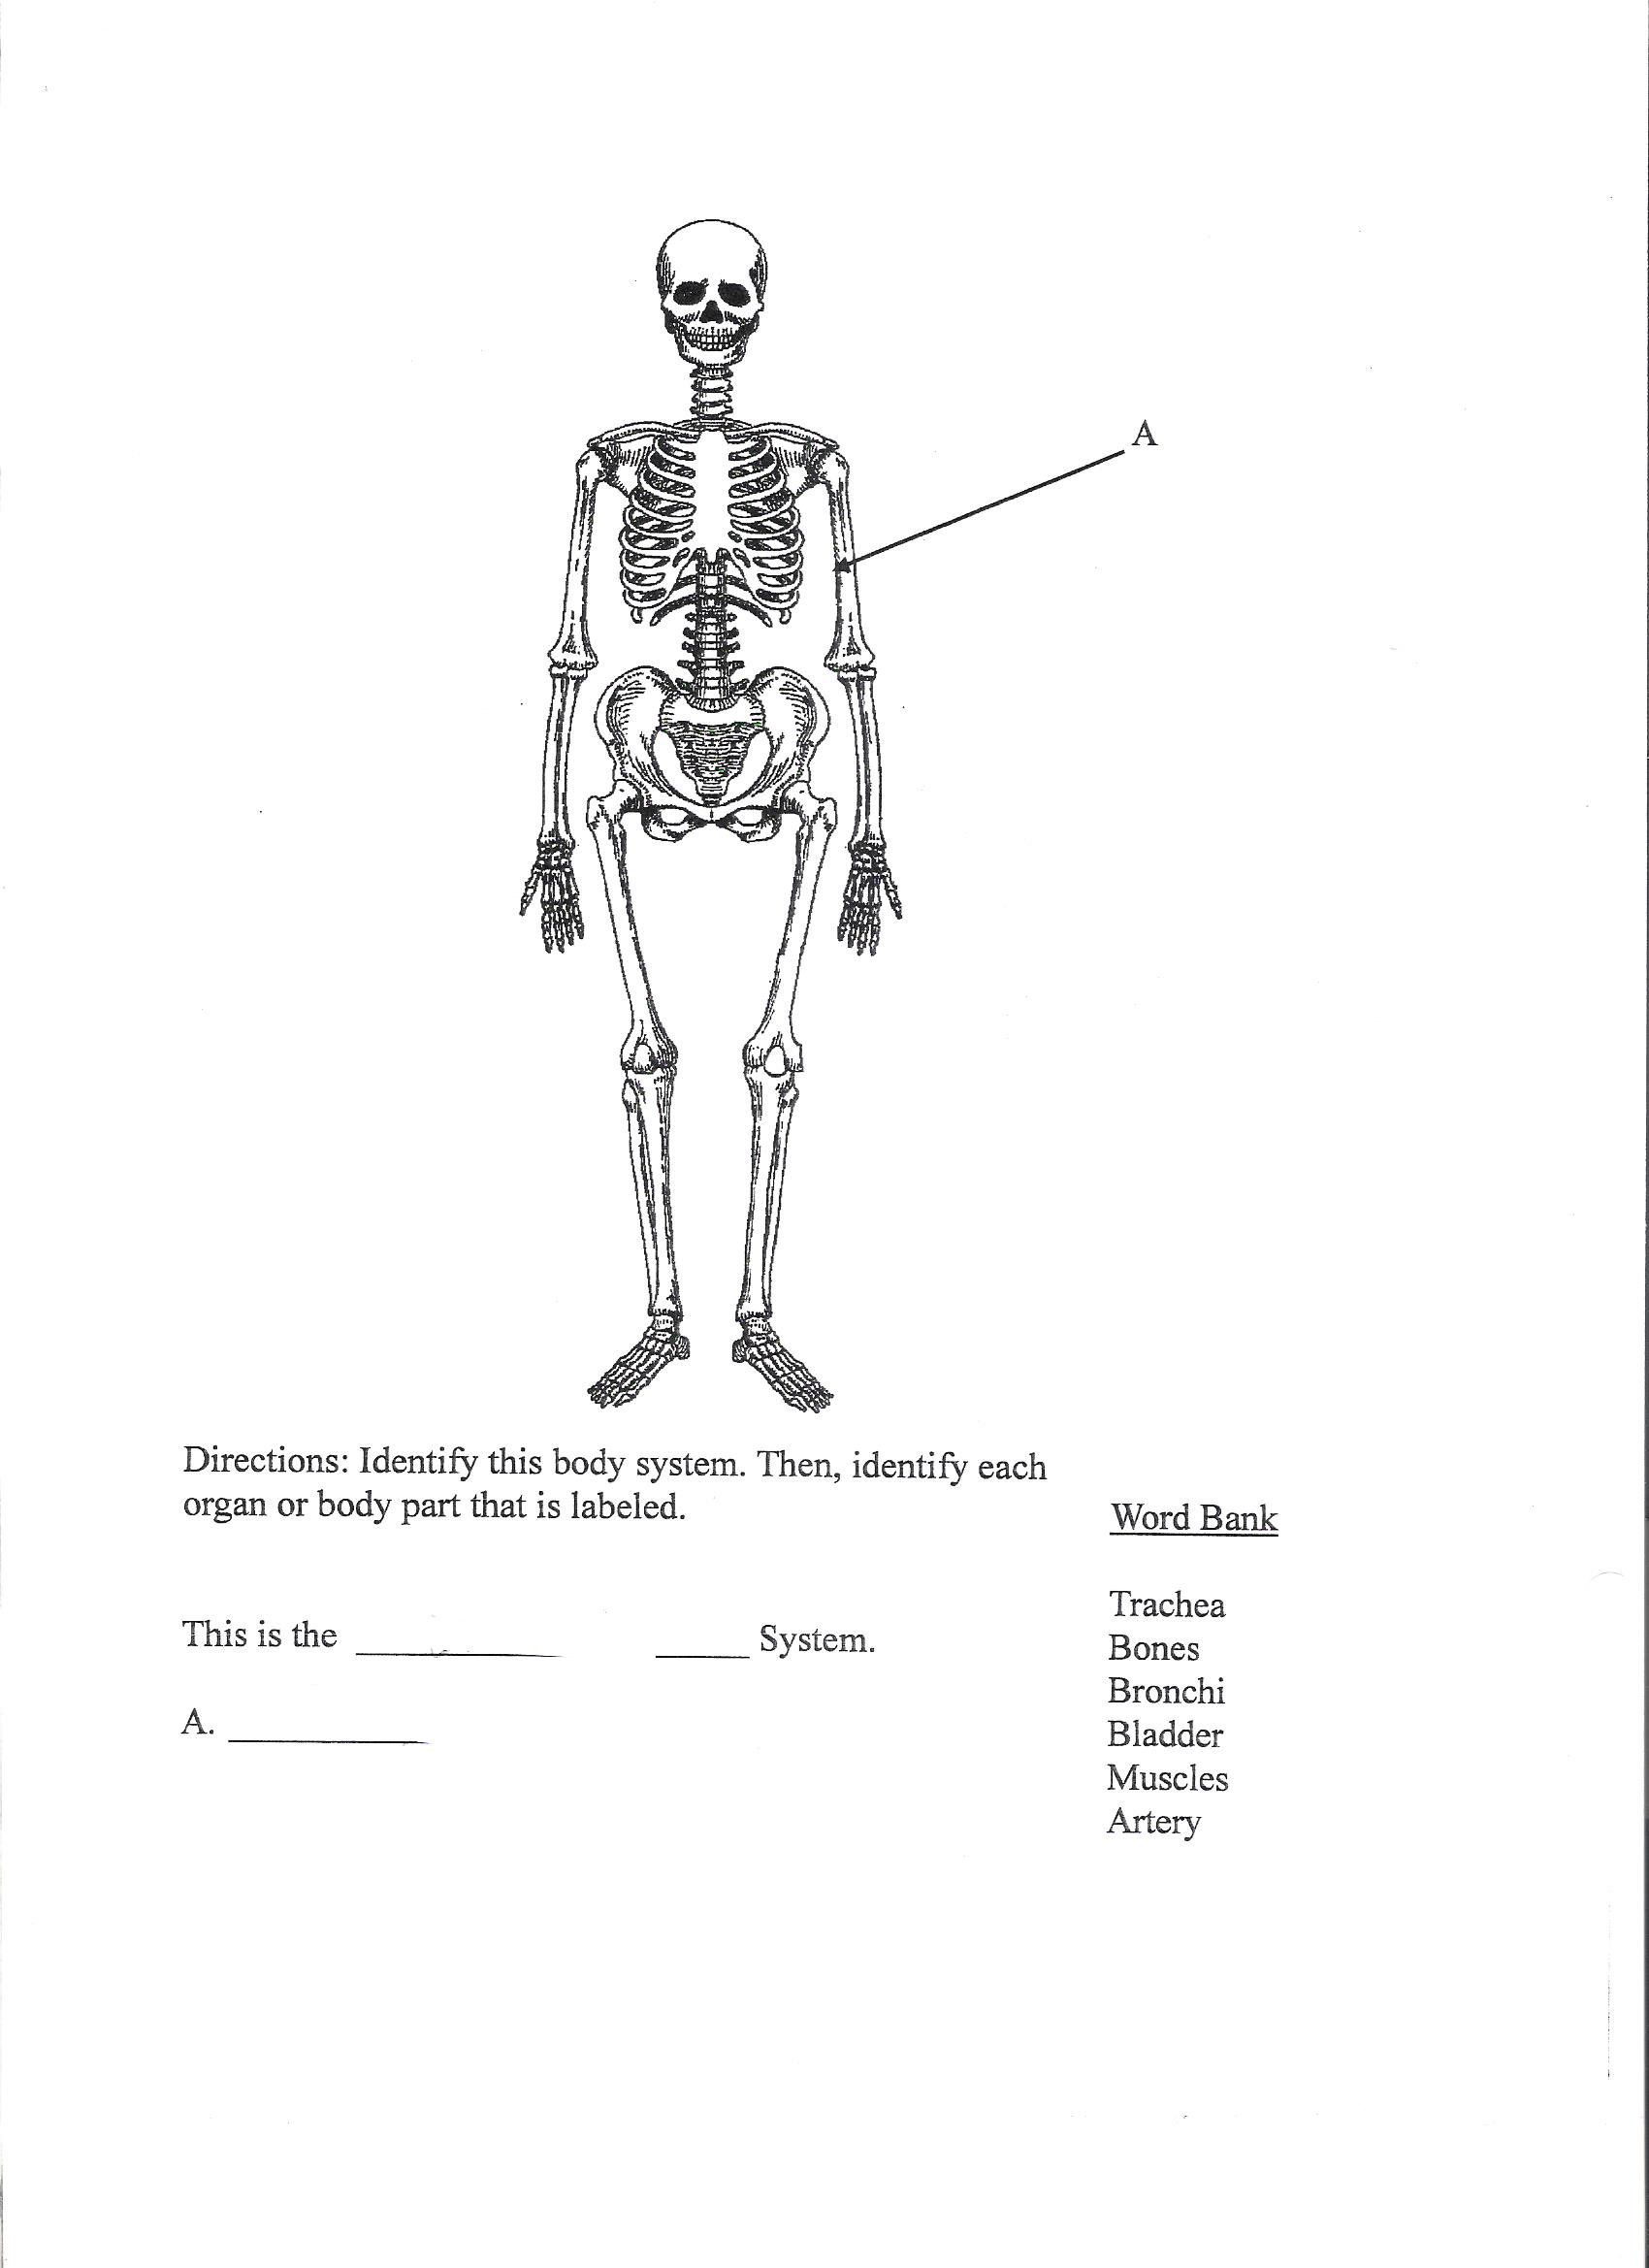 Mahon-POST Human Body Systems and Functions Assessment